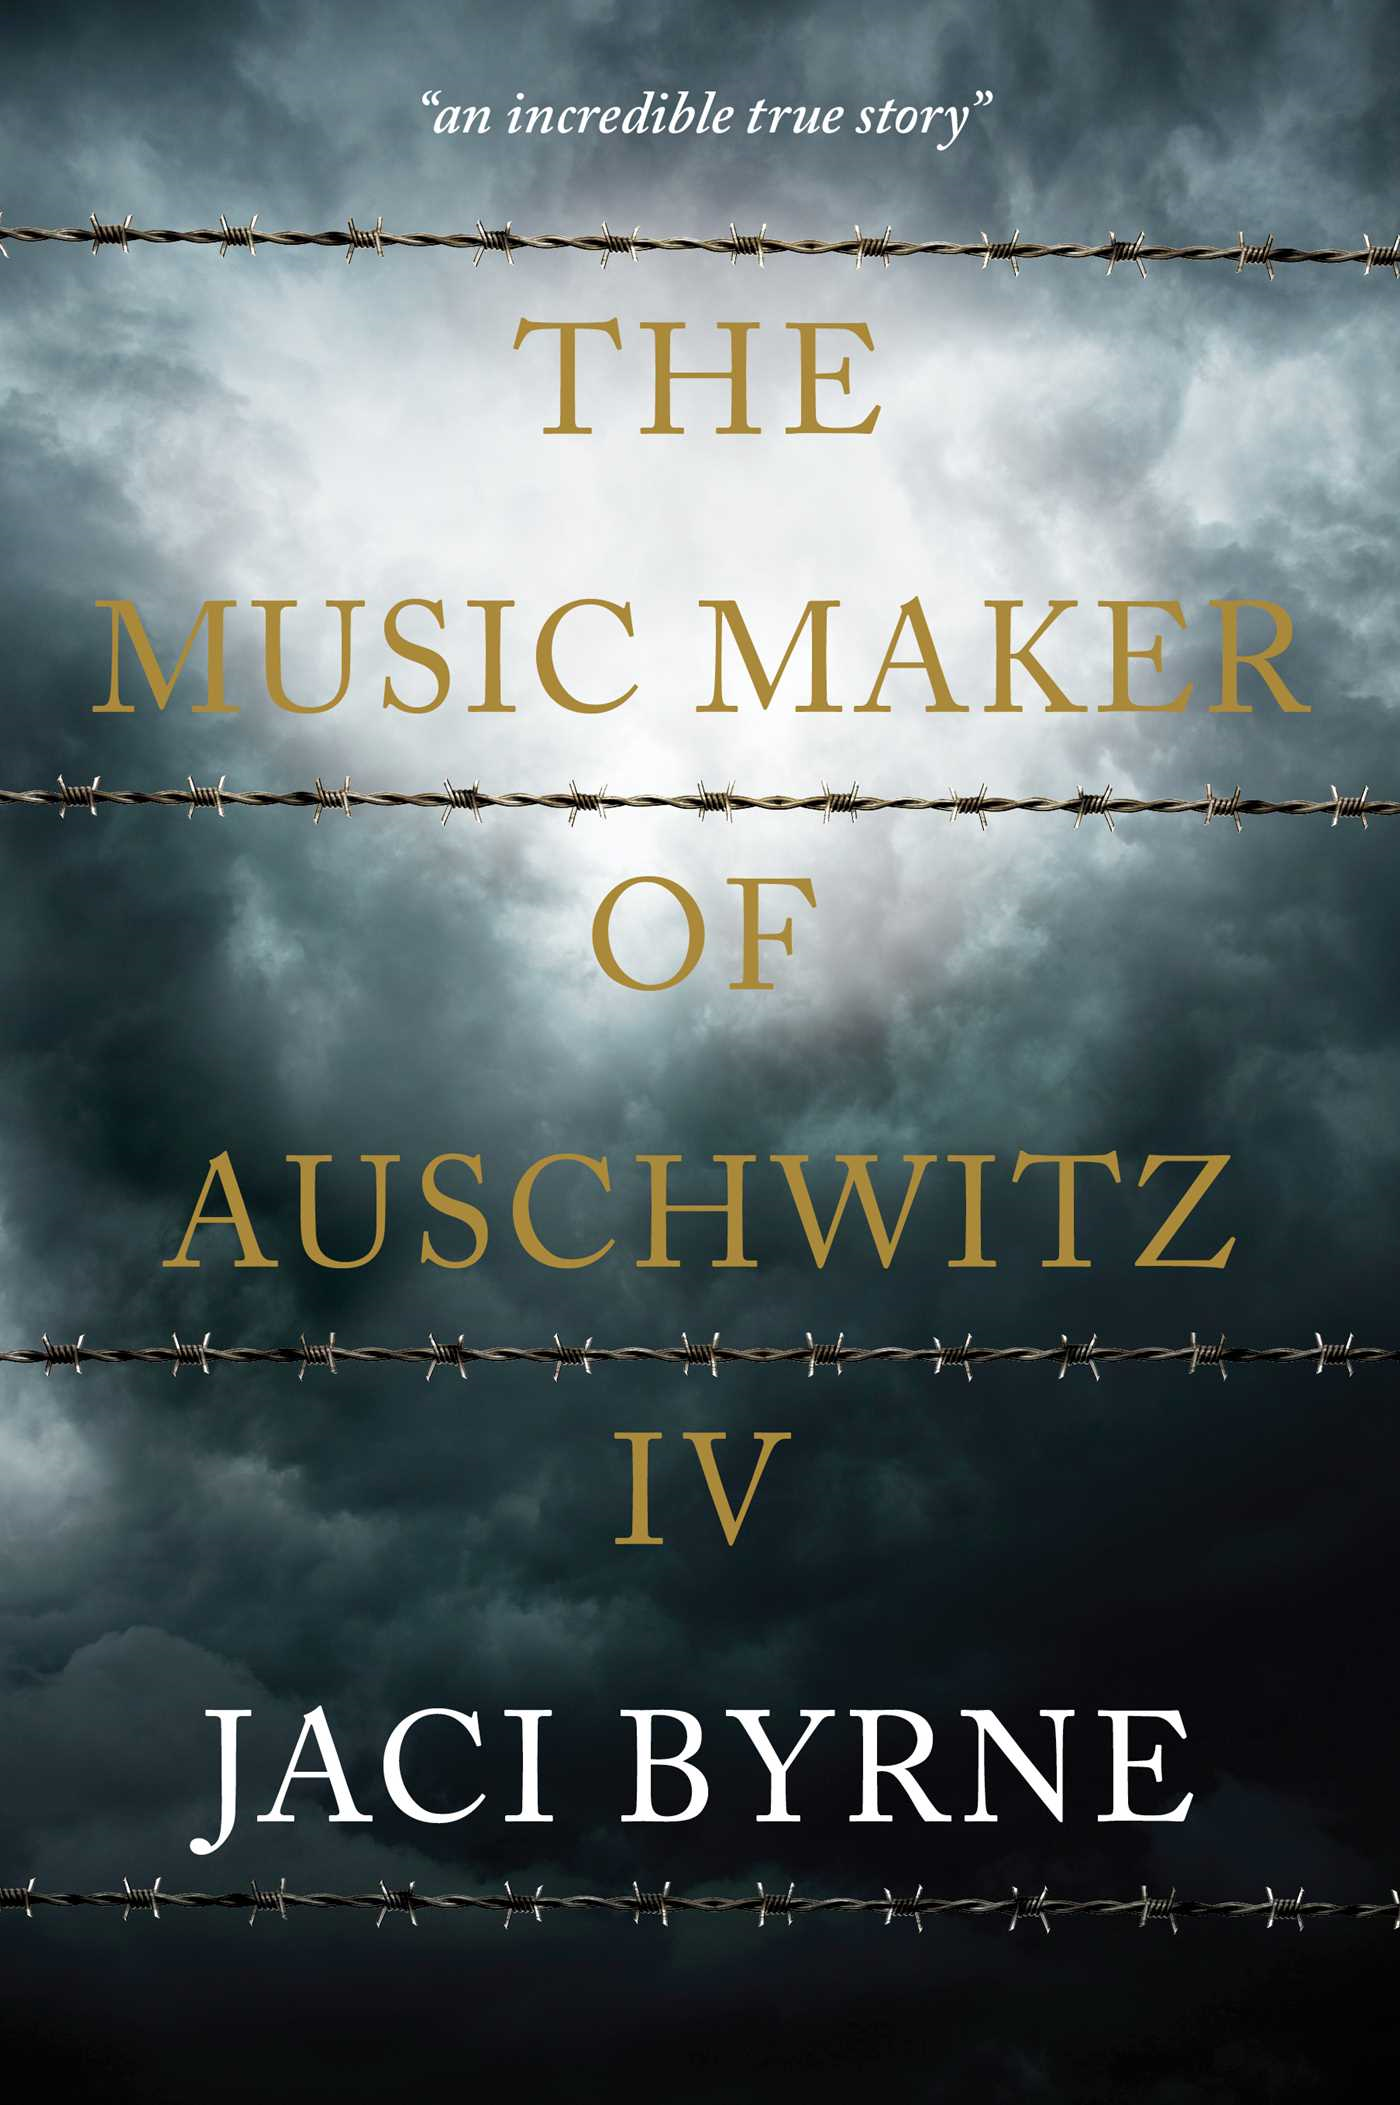 The Music Maker of Auschwitz IV